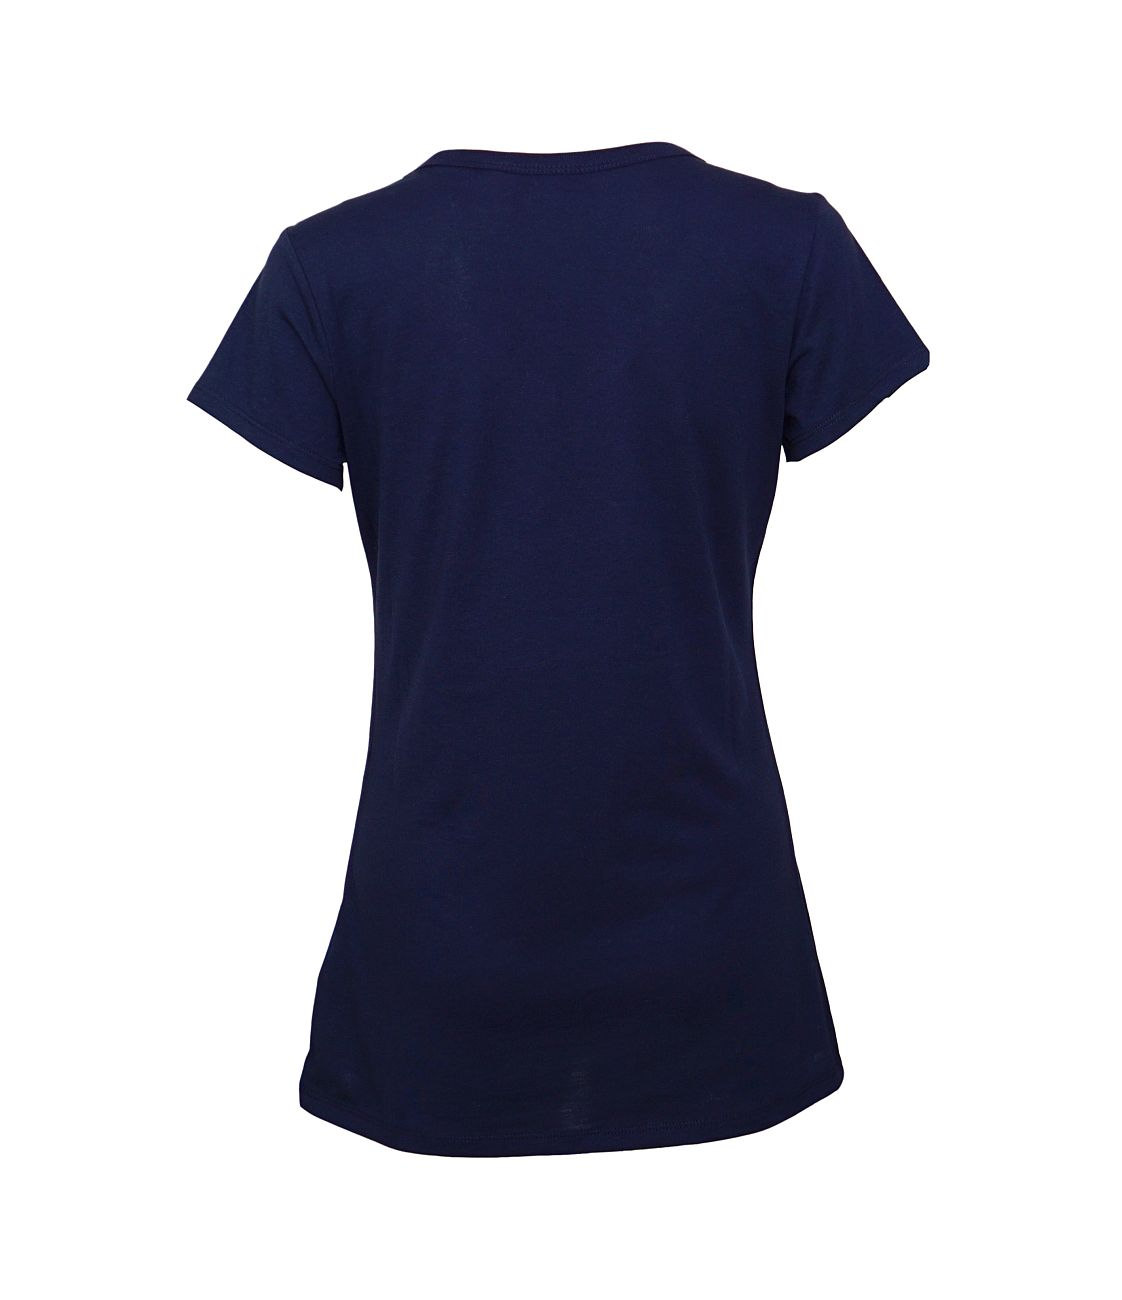 G-Star RAW Damen Shirt T-Shirt Eyben slim D04434 2757 6067 Sartho Blue F18-GSD1